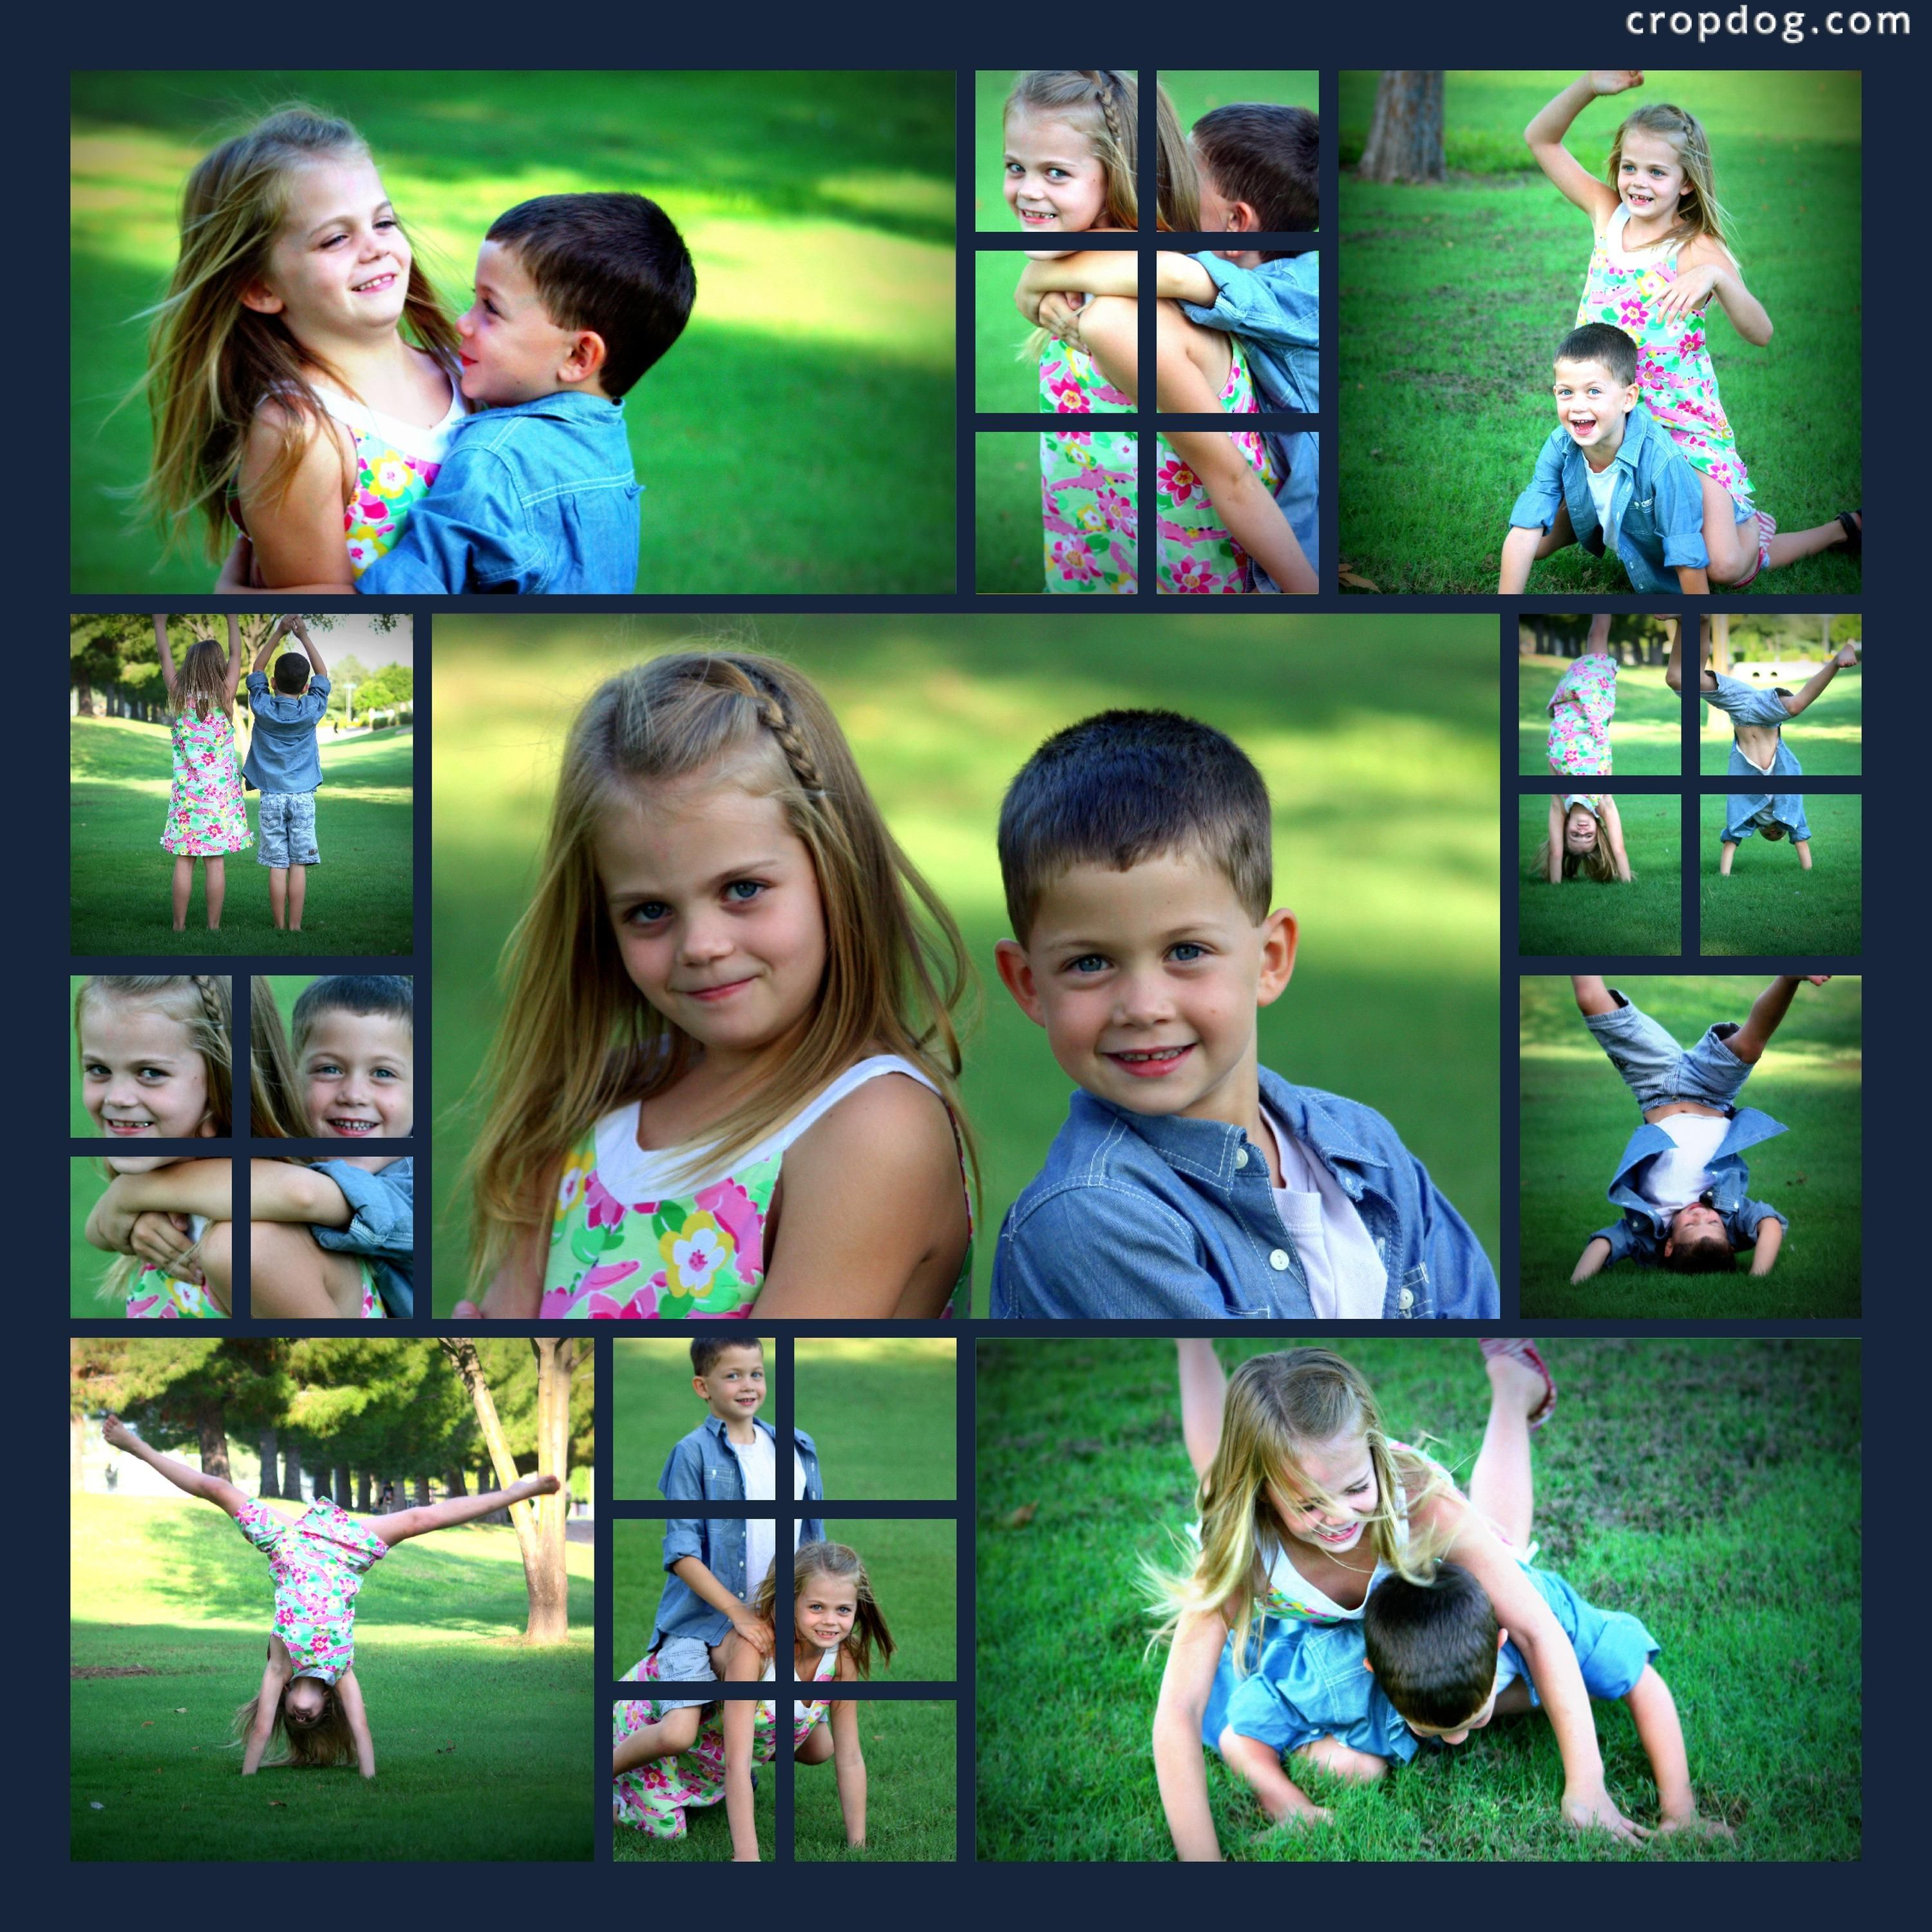 Great kid poses 11 image pattern from